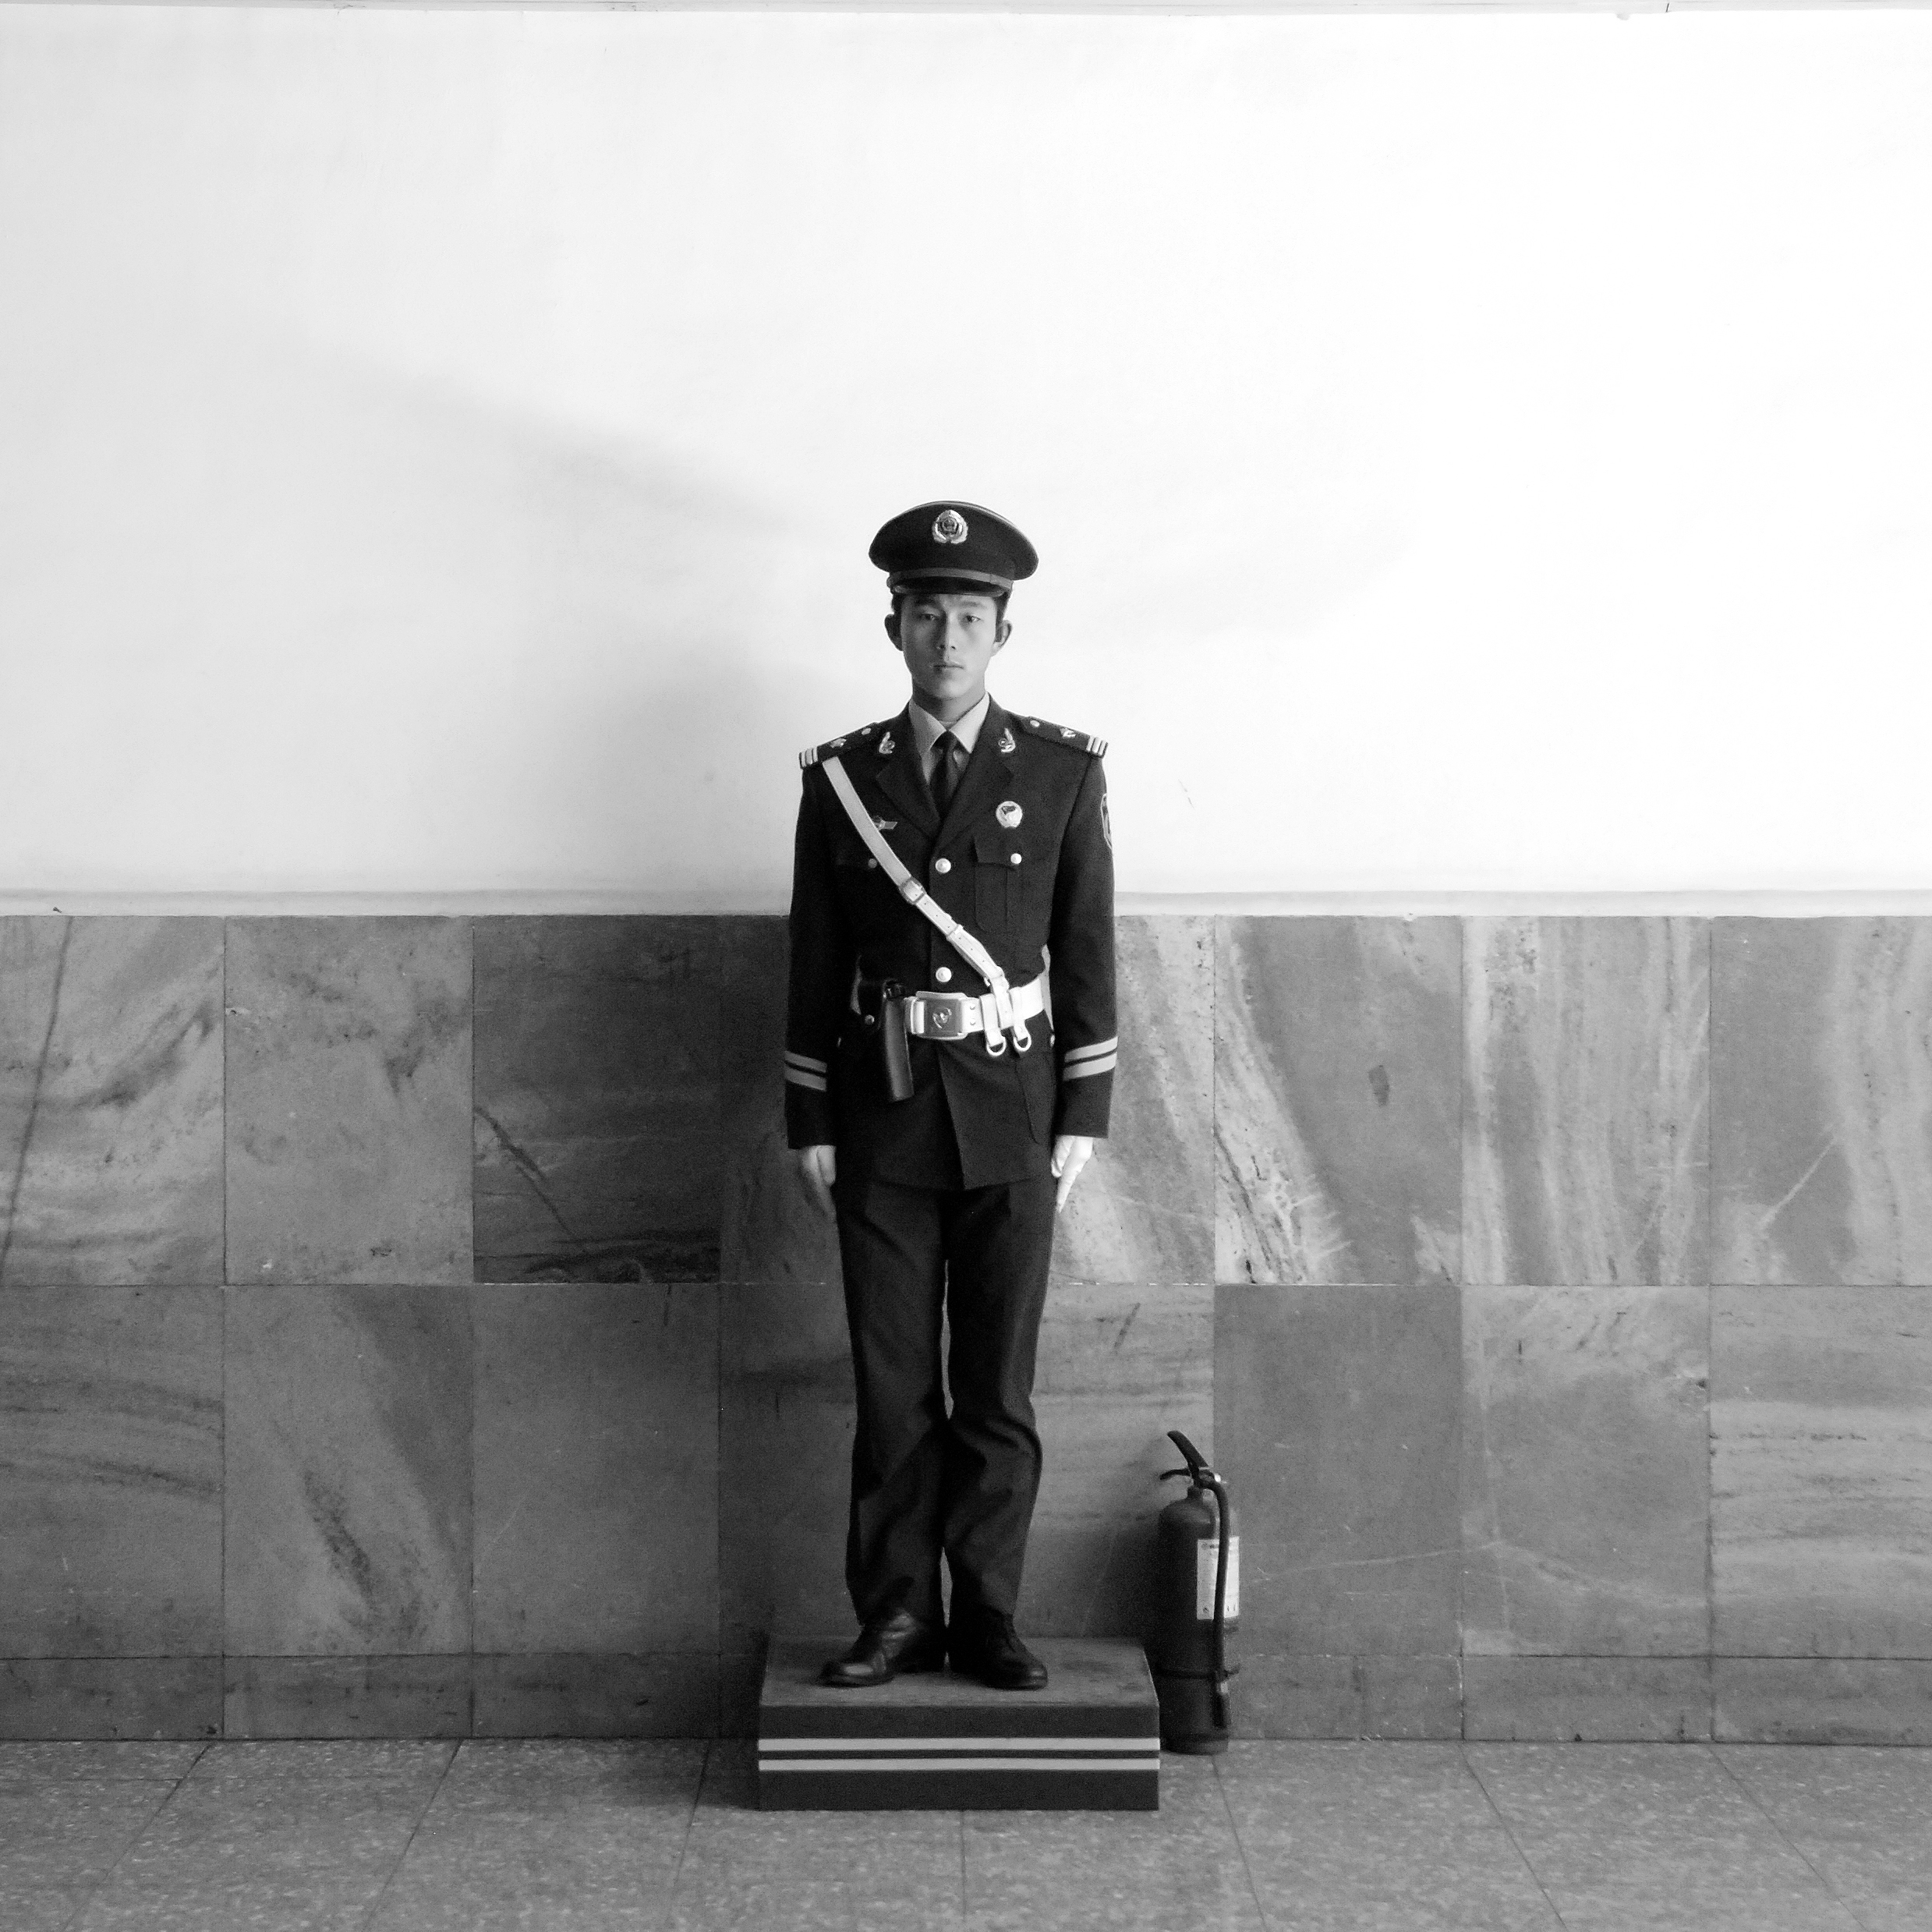 Beijing, China. A policeman guards the subway entrance to Tiananmen Square during the daily sunrise flag-raising ceremony